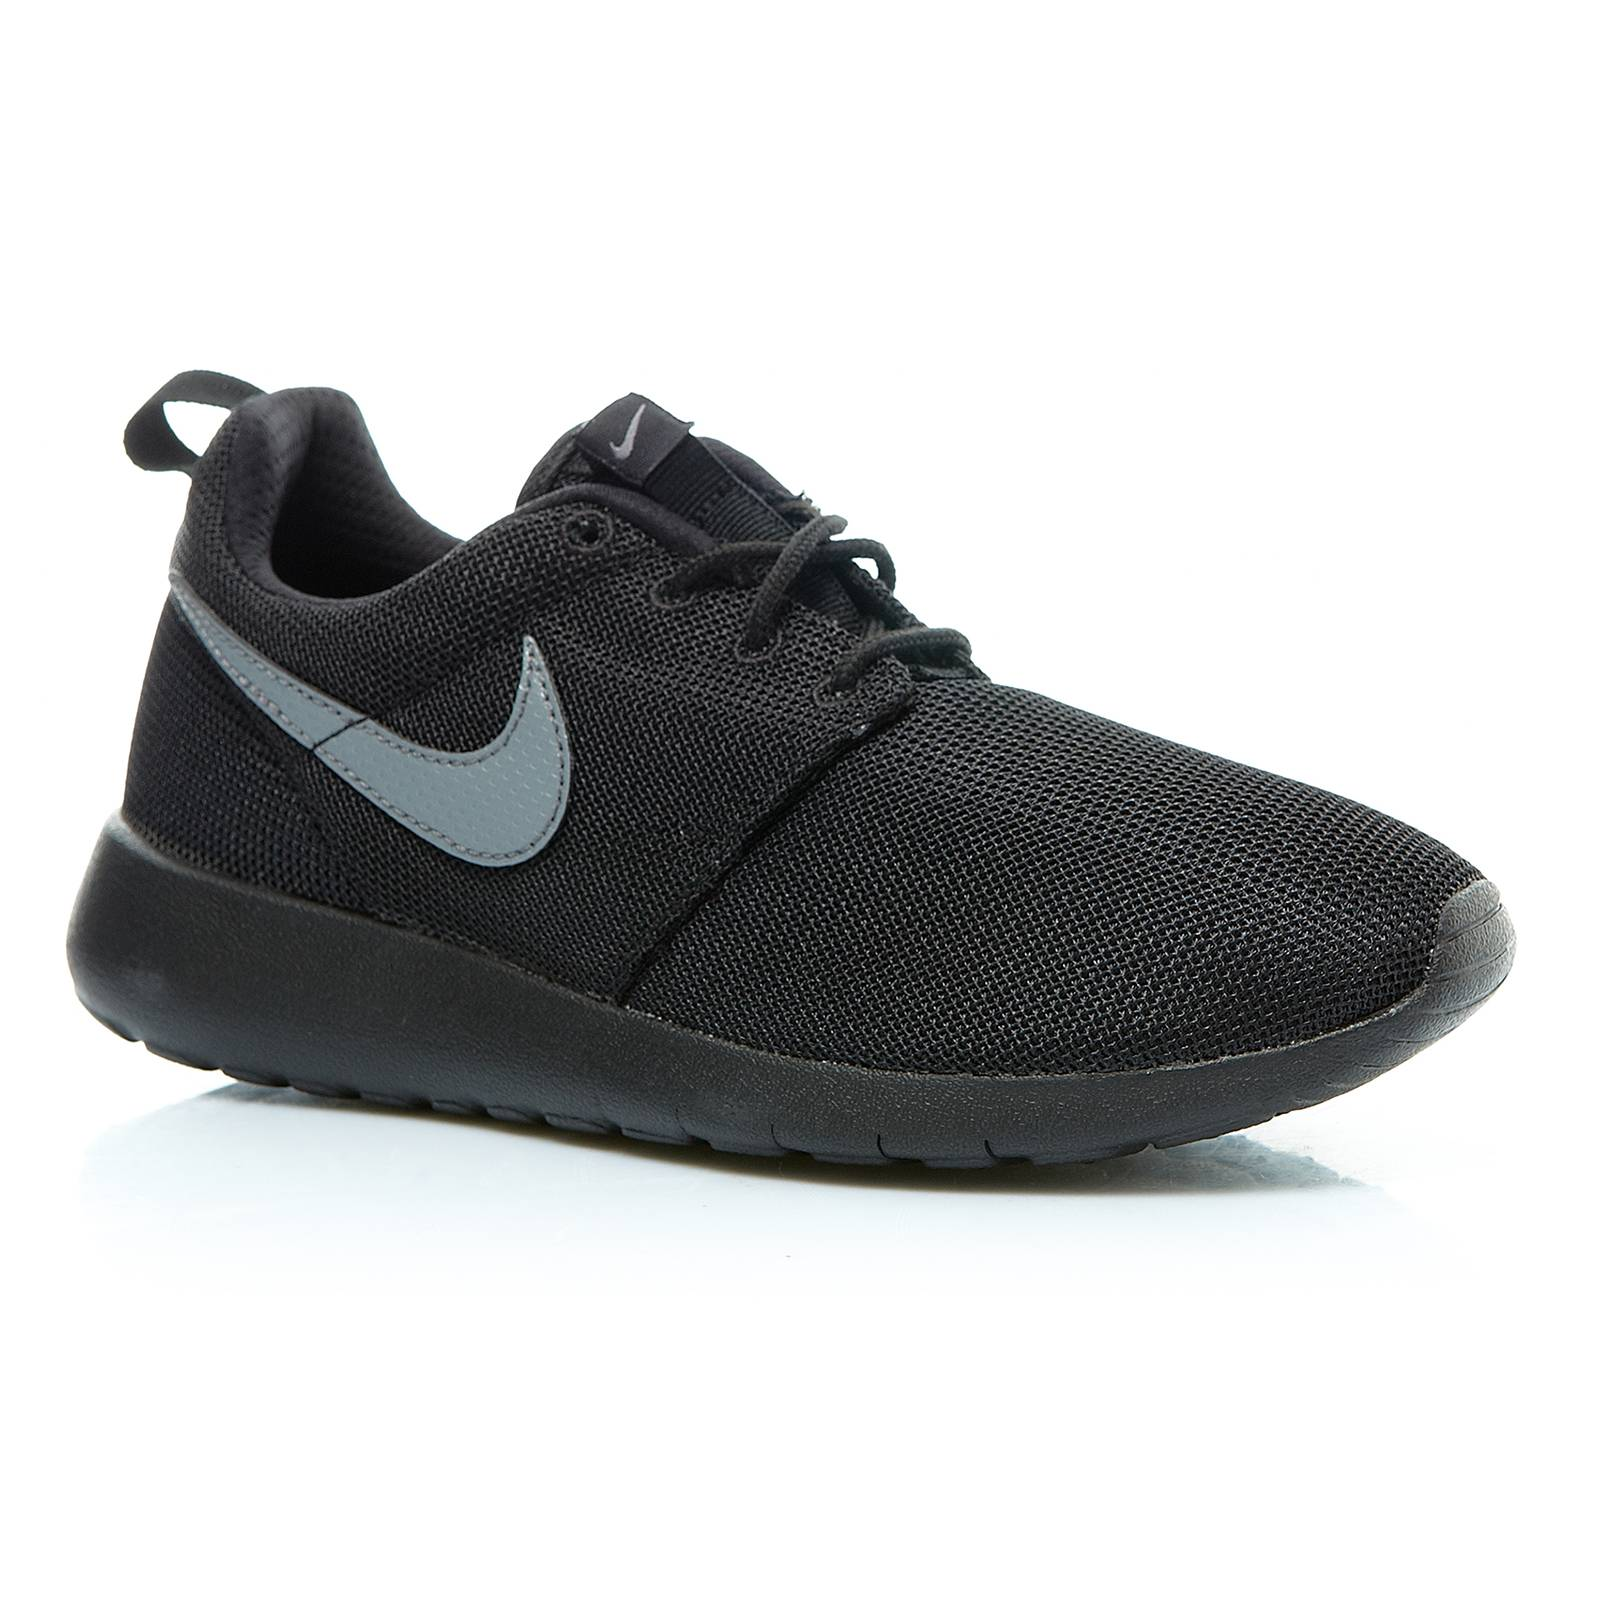 nike roshe one gs turnschuhe sneakers schwarz. Black Bedroom Furniture Sets. Home Design Ideas